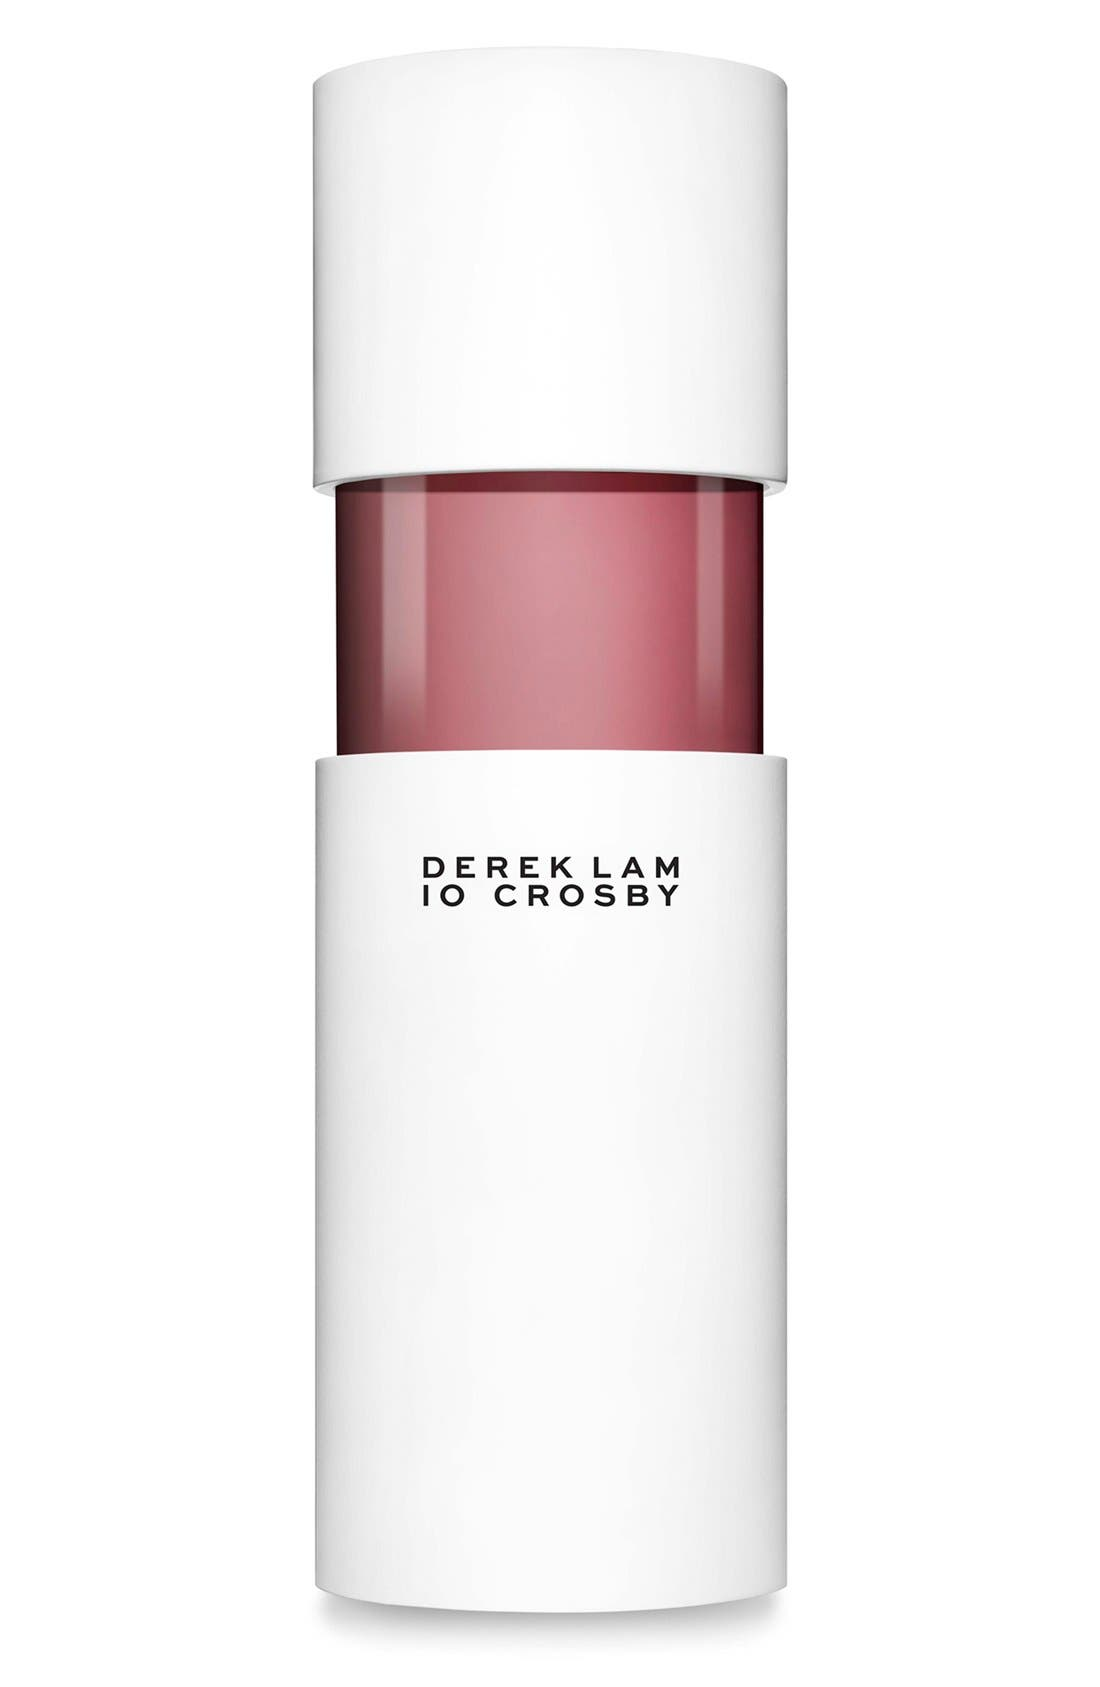 Derek Lam 10 Crosby 'Something Wild' Eau de Parfum